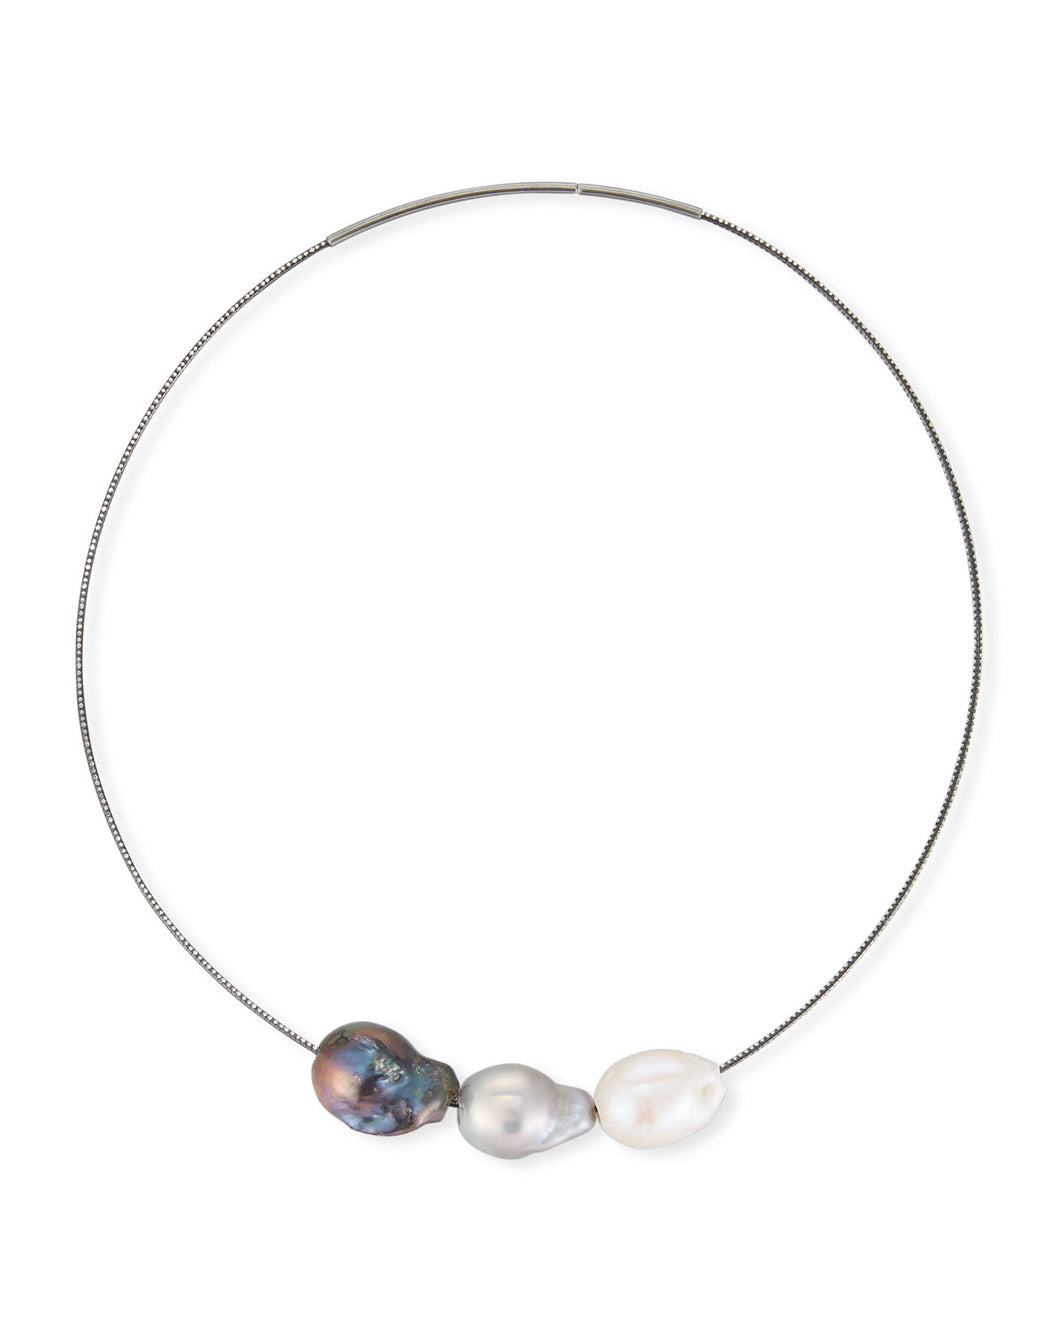 White, Grey and Peacock Baroque Pearl Necklace